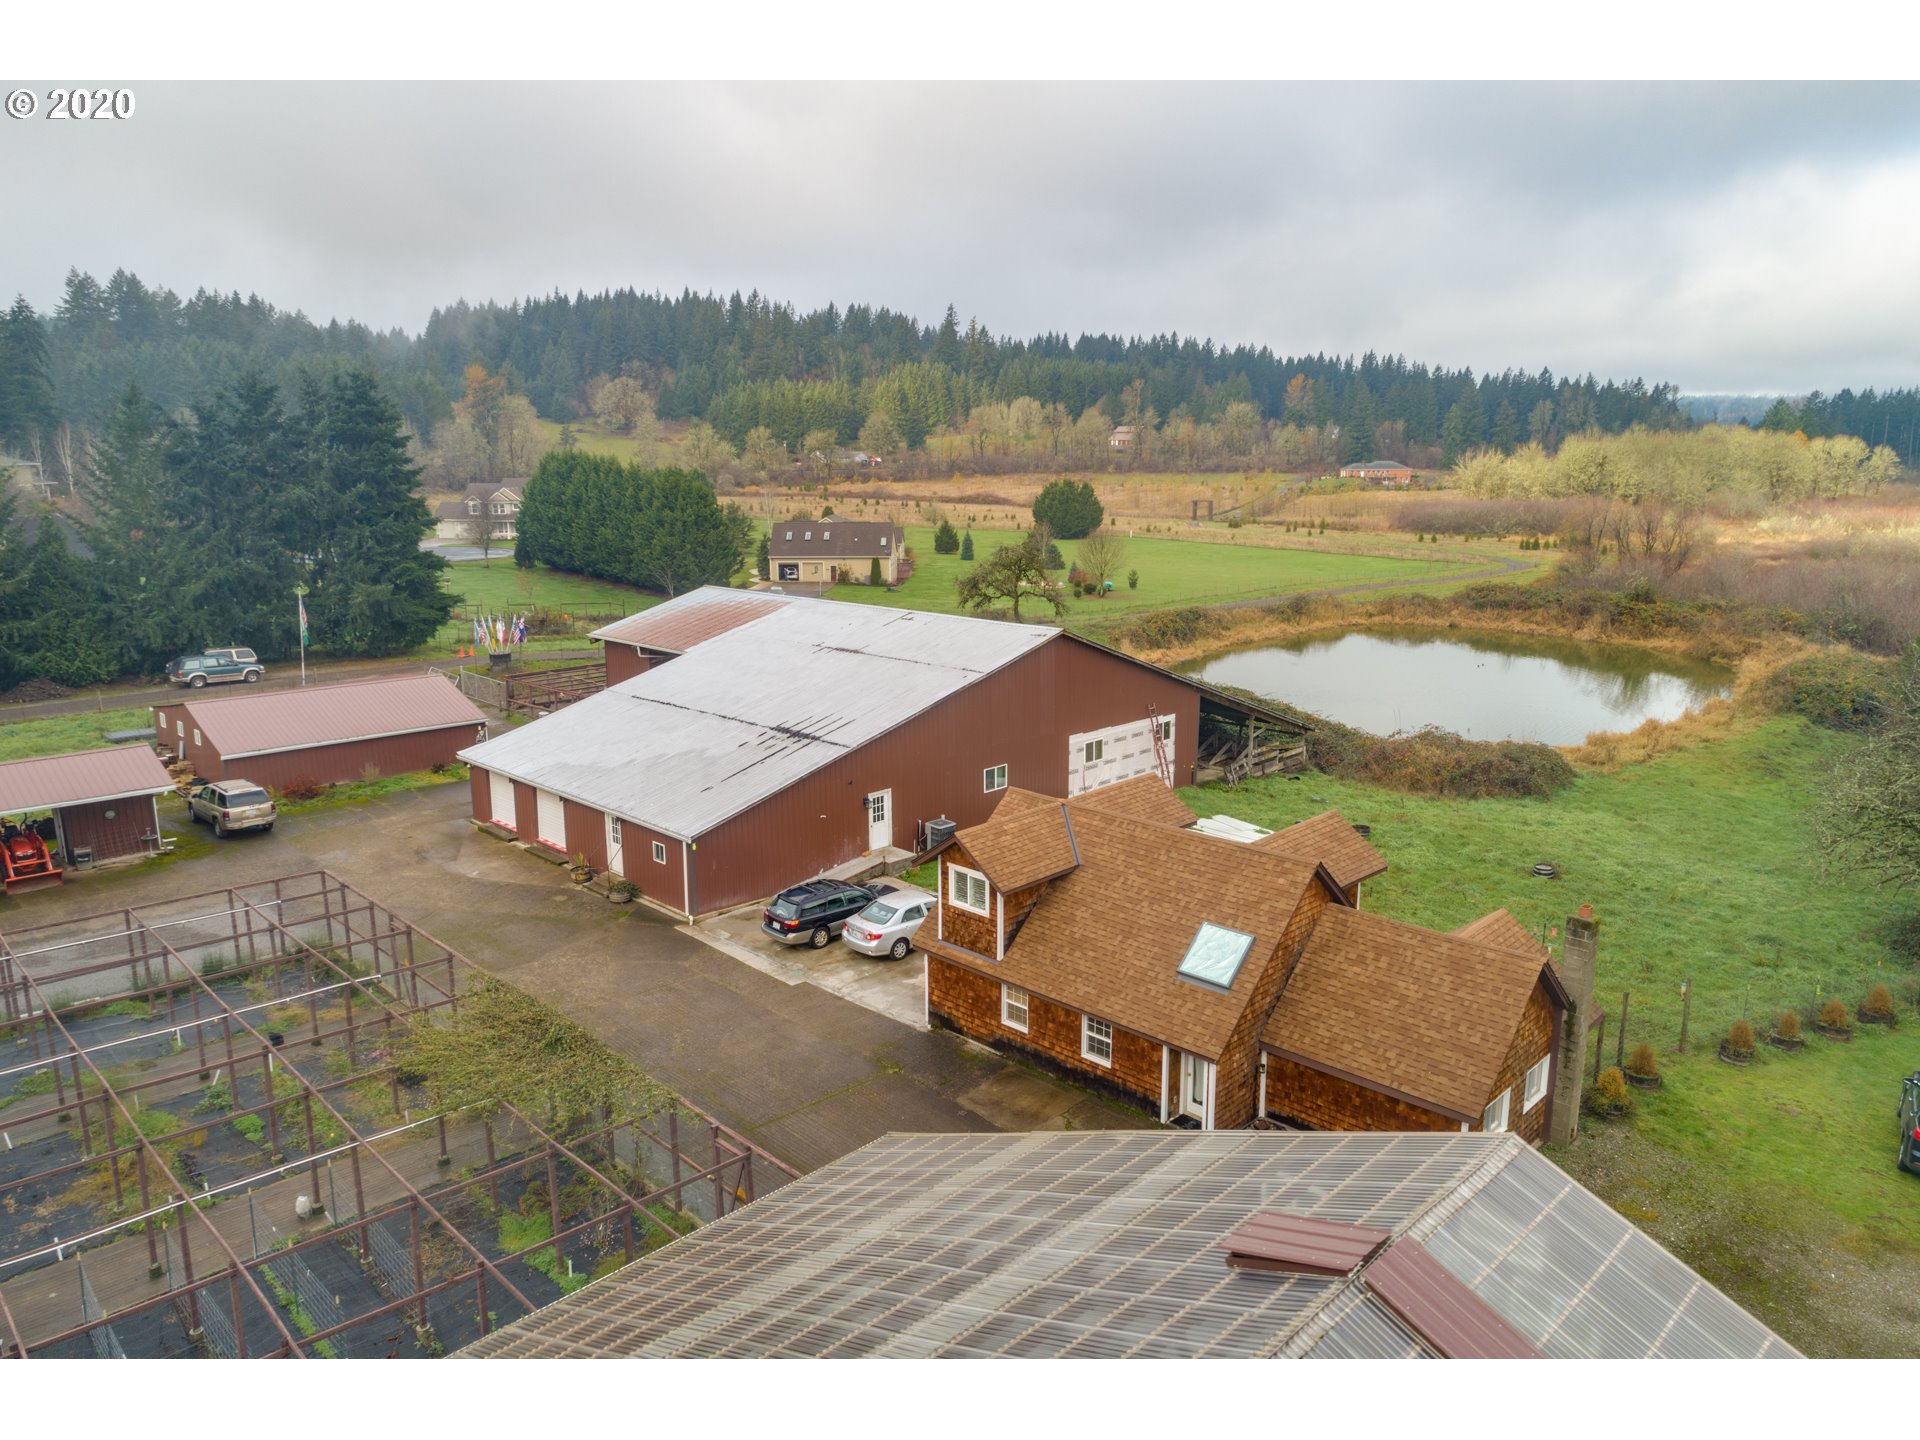 17808 NE 259th St, Battle Ground, WA 98604